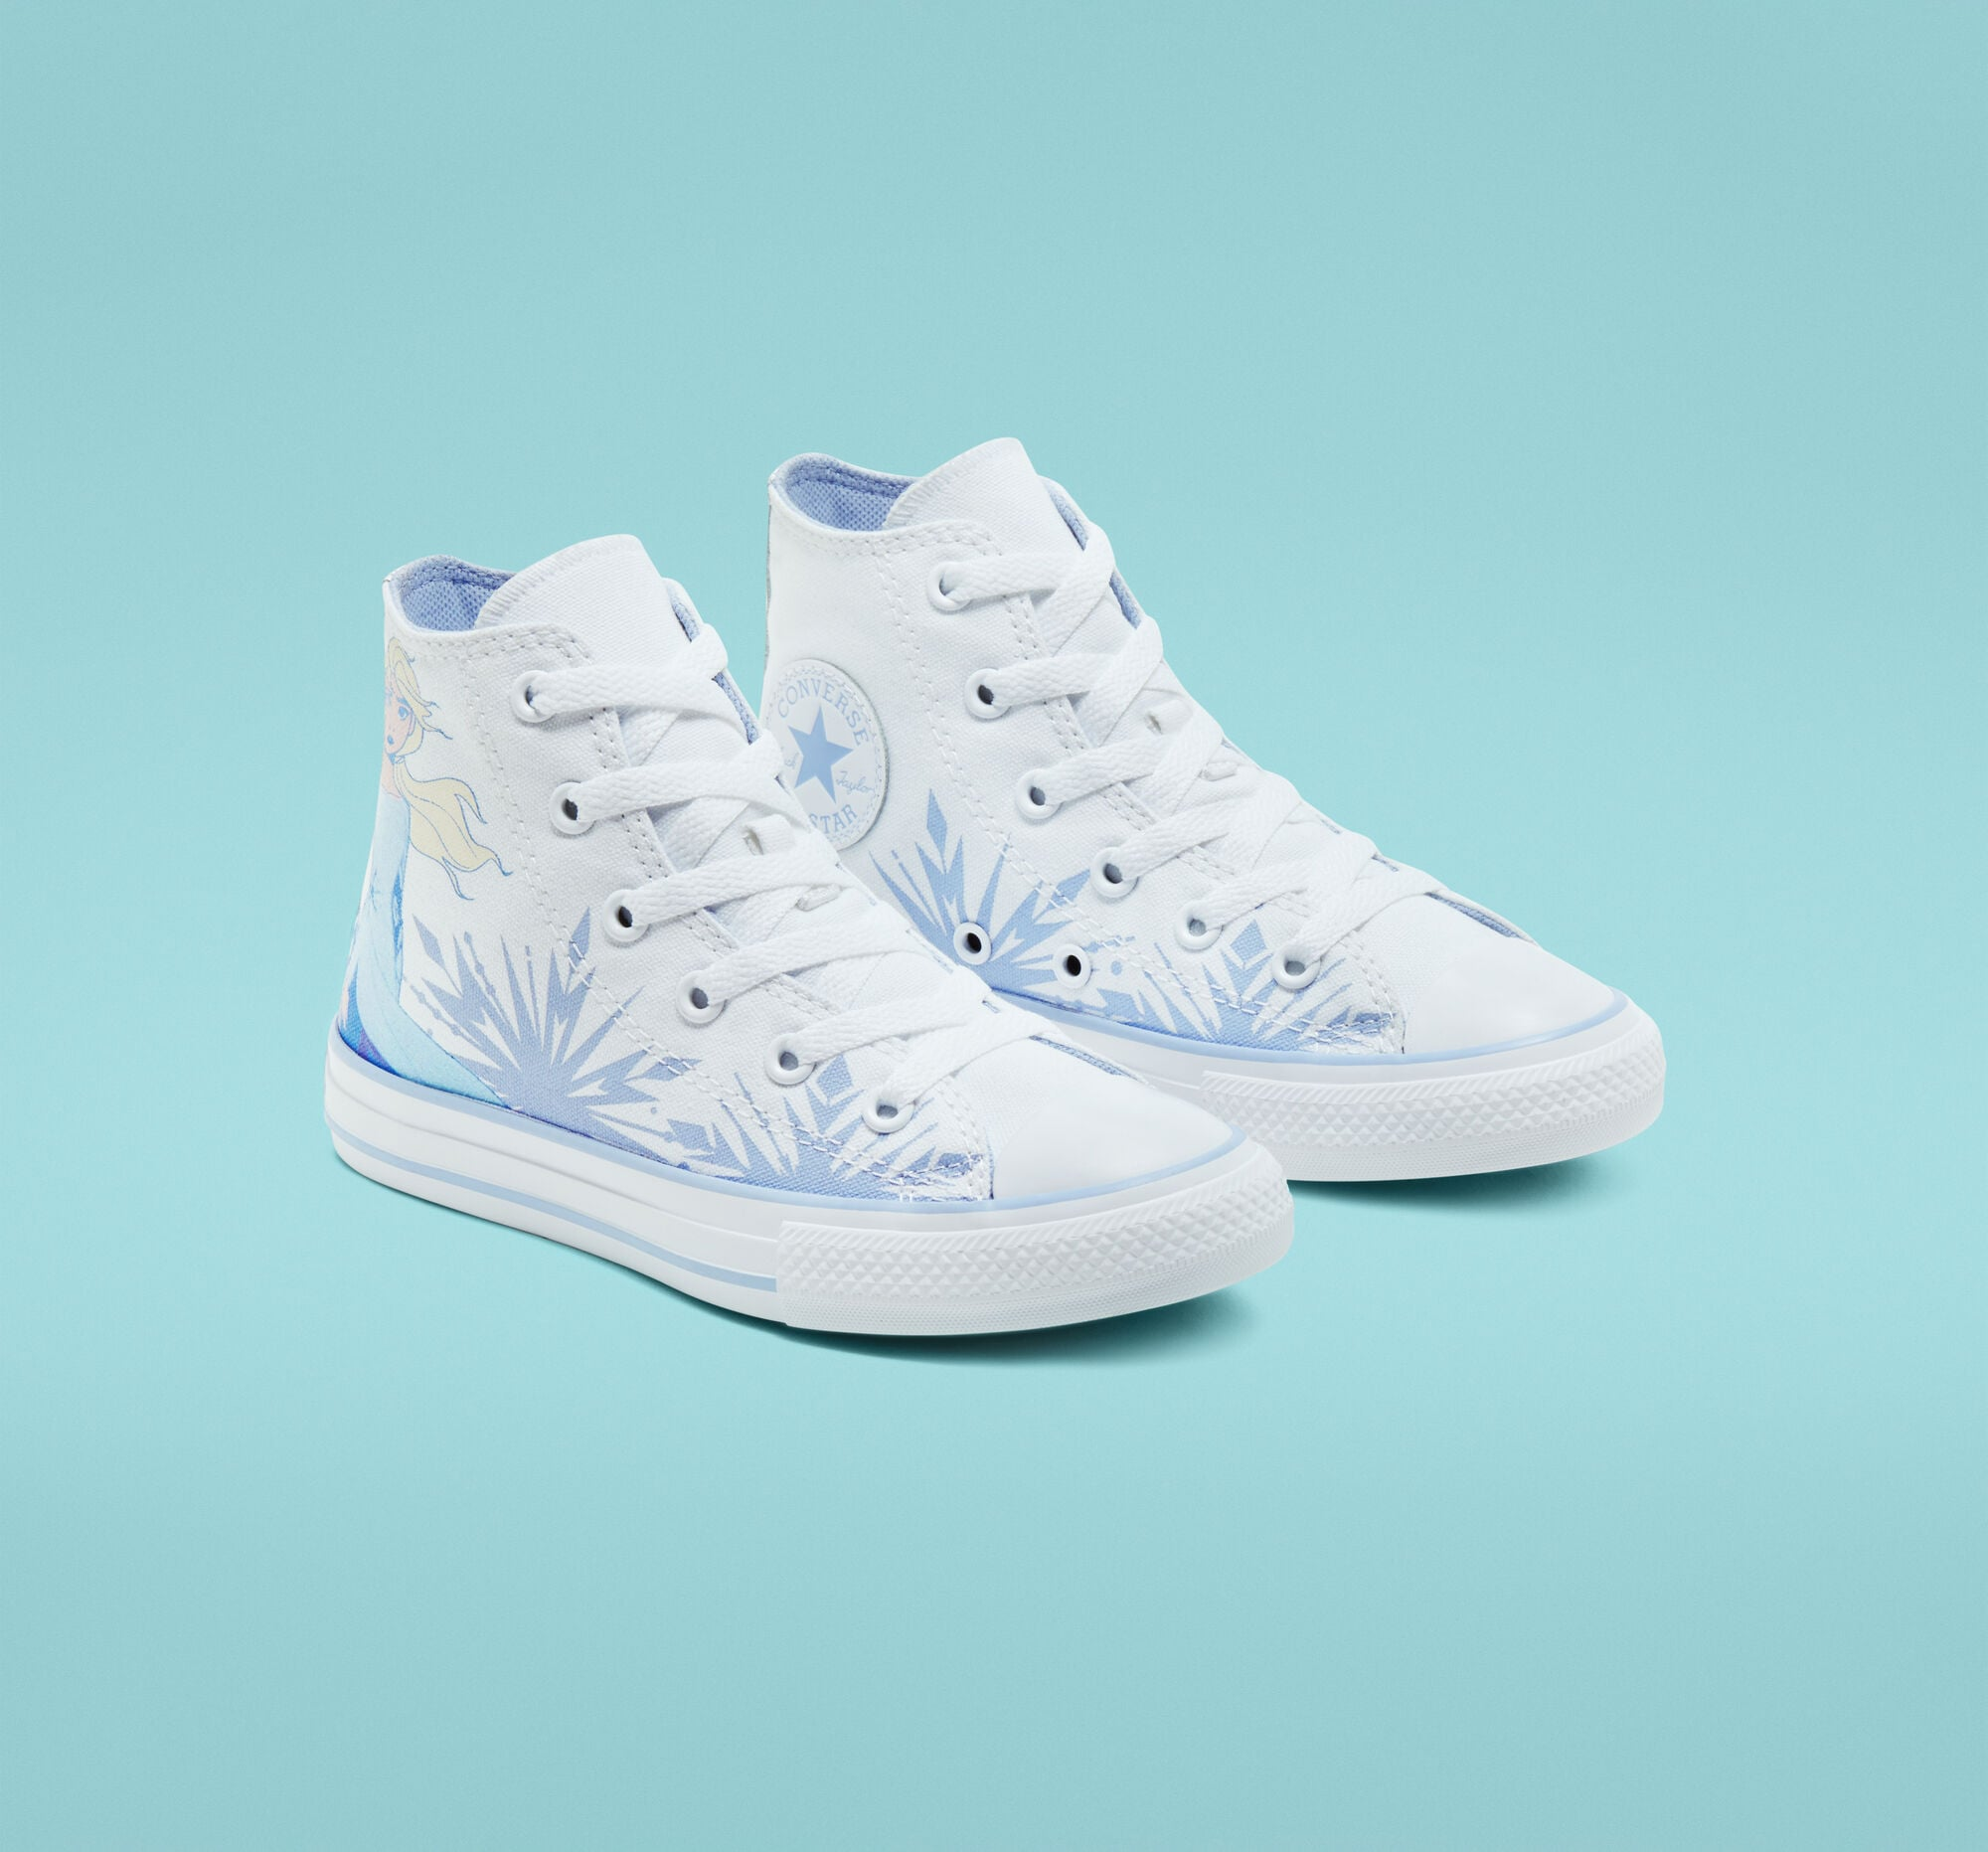 Converse x Frozen 2 Chuck Taylor All Star — Little Kids